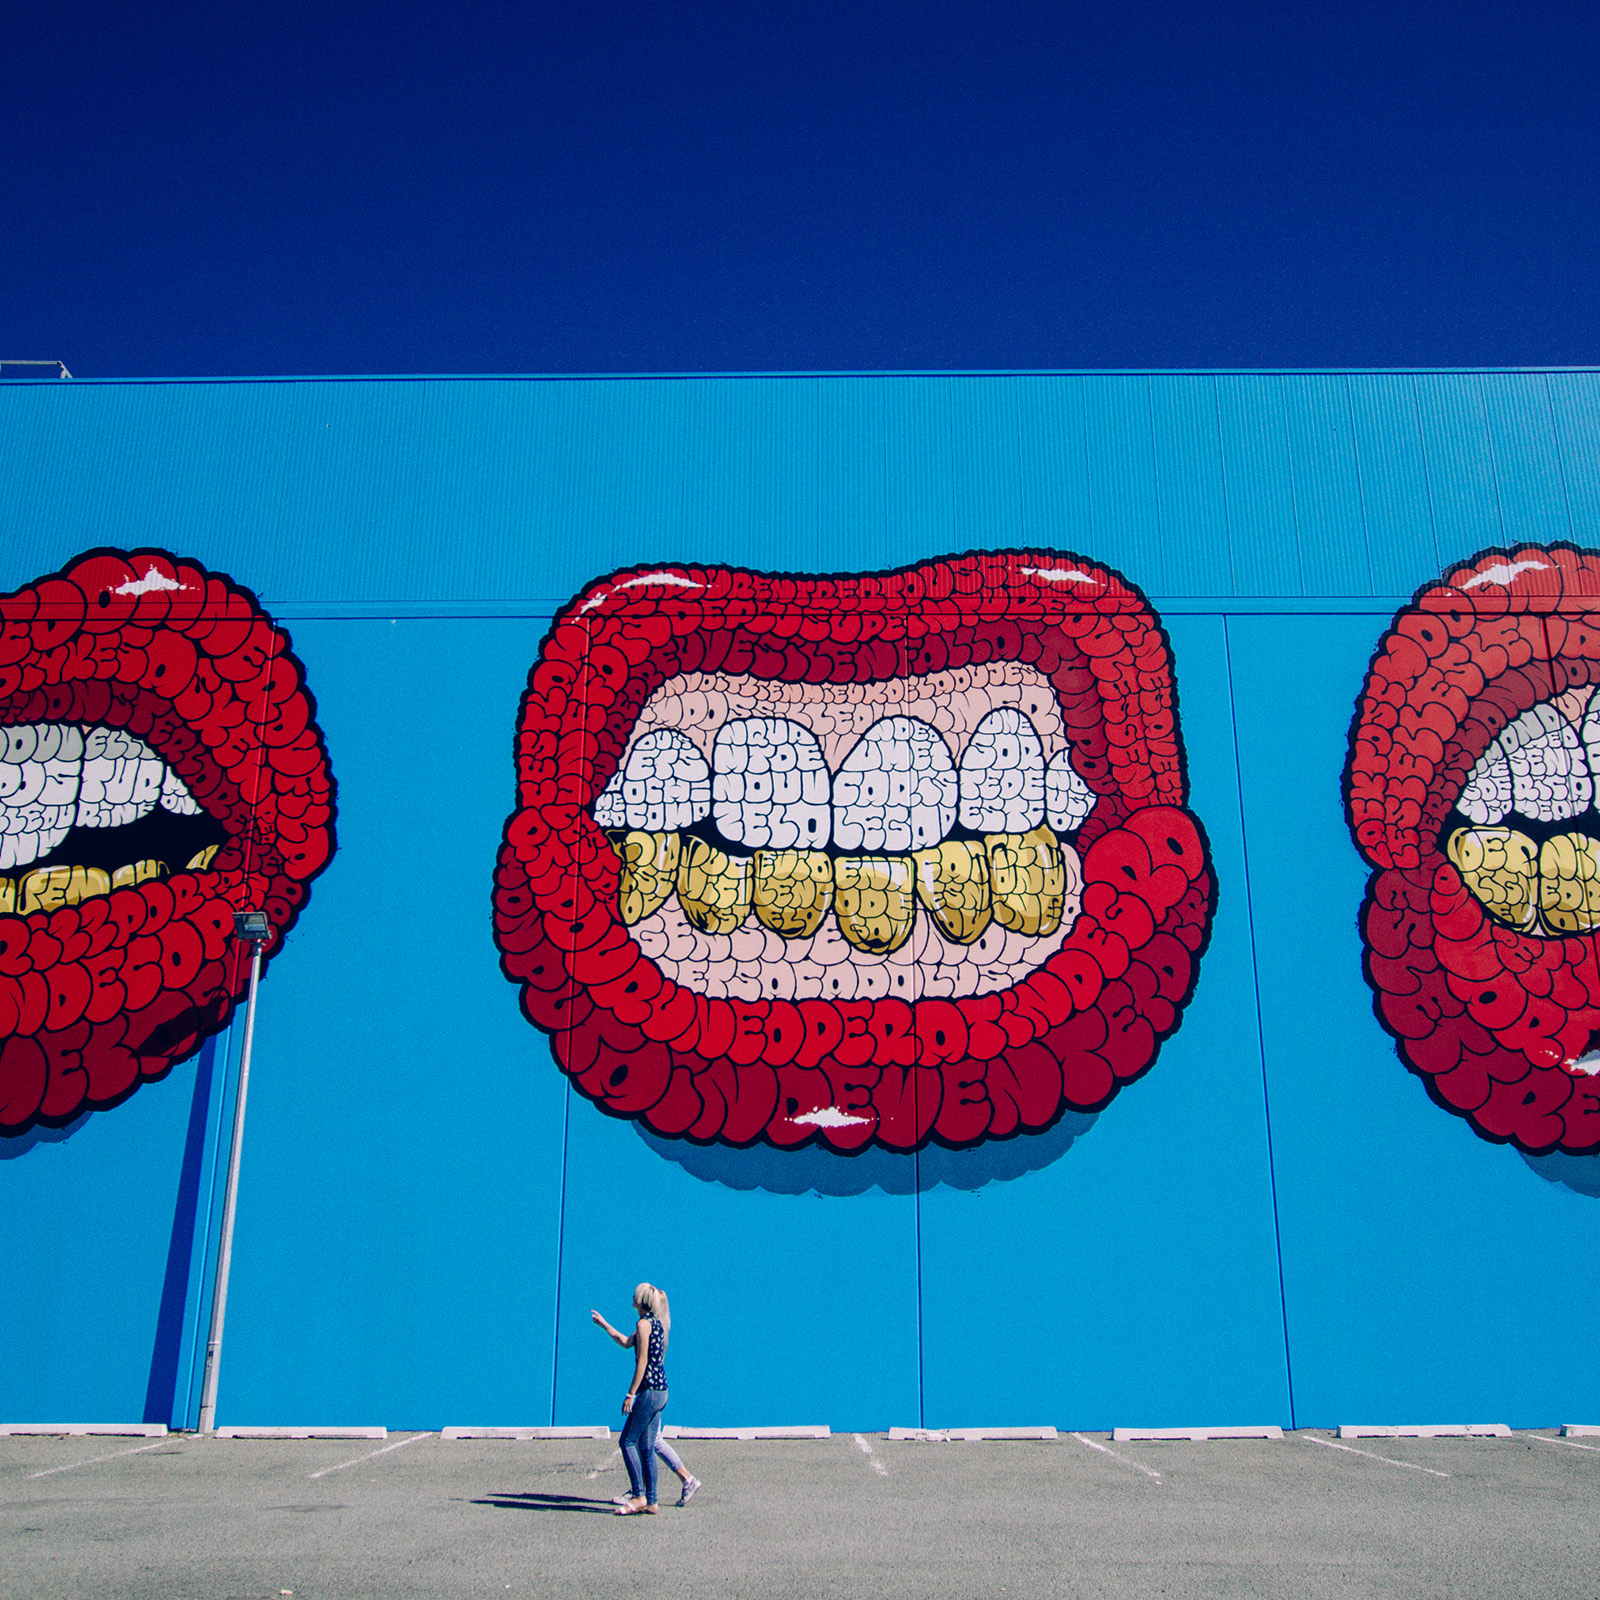 MAG1215-XL-new-zealand-street-art.jpg